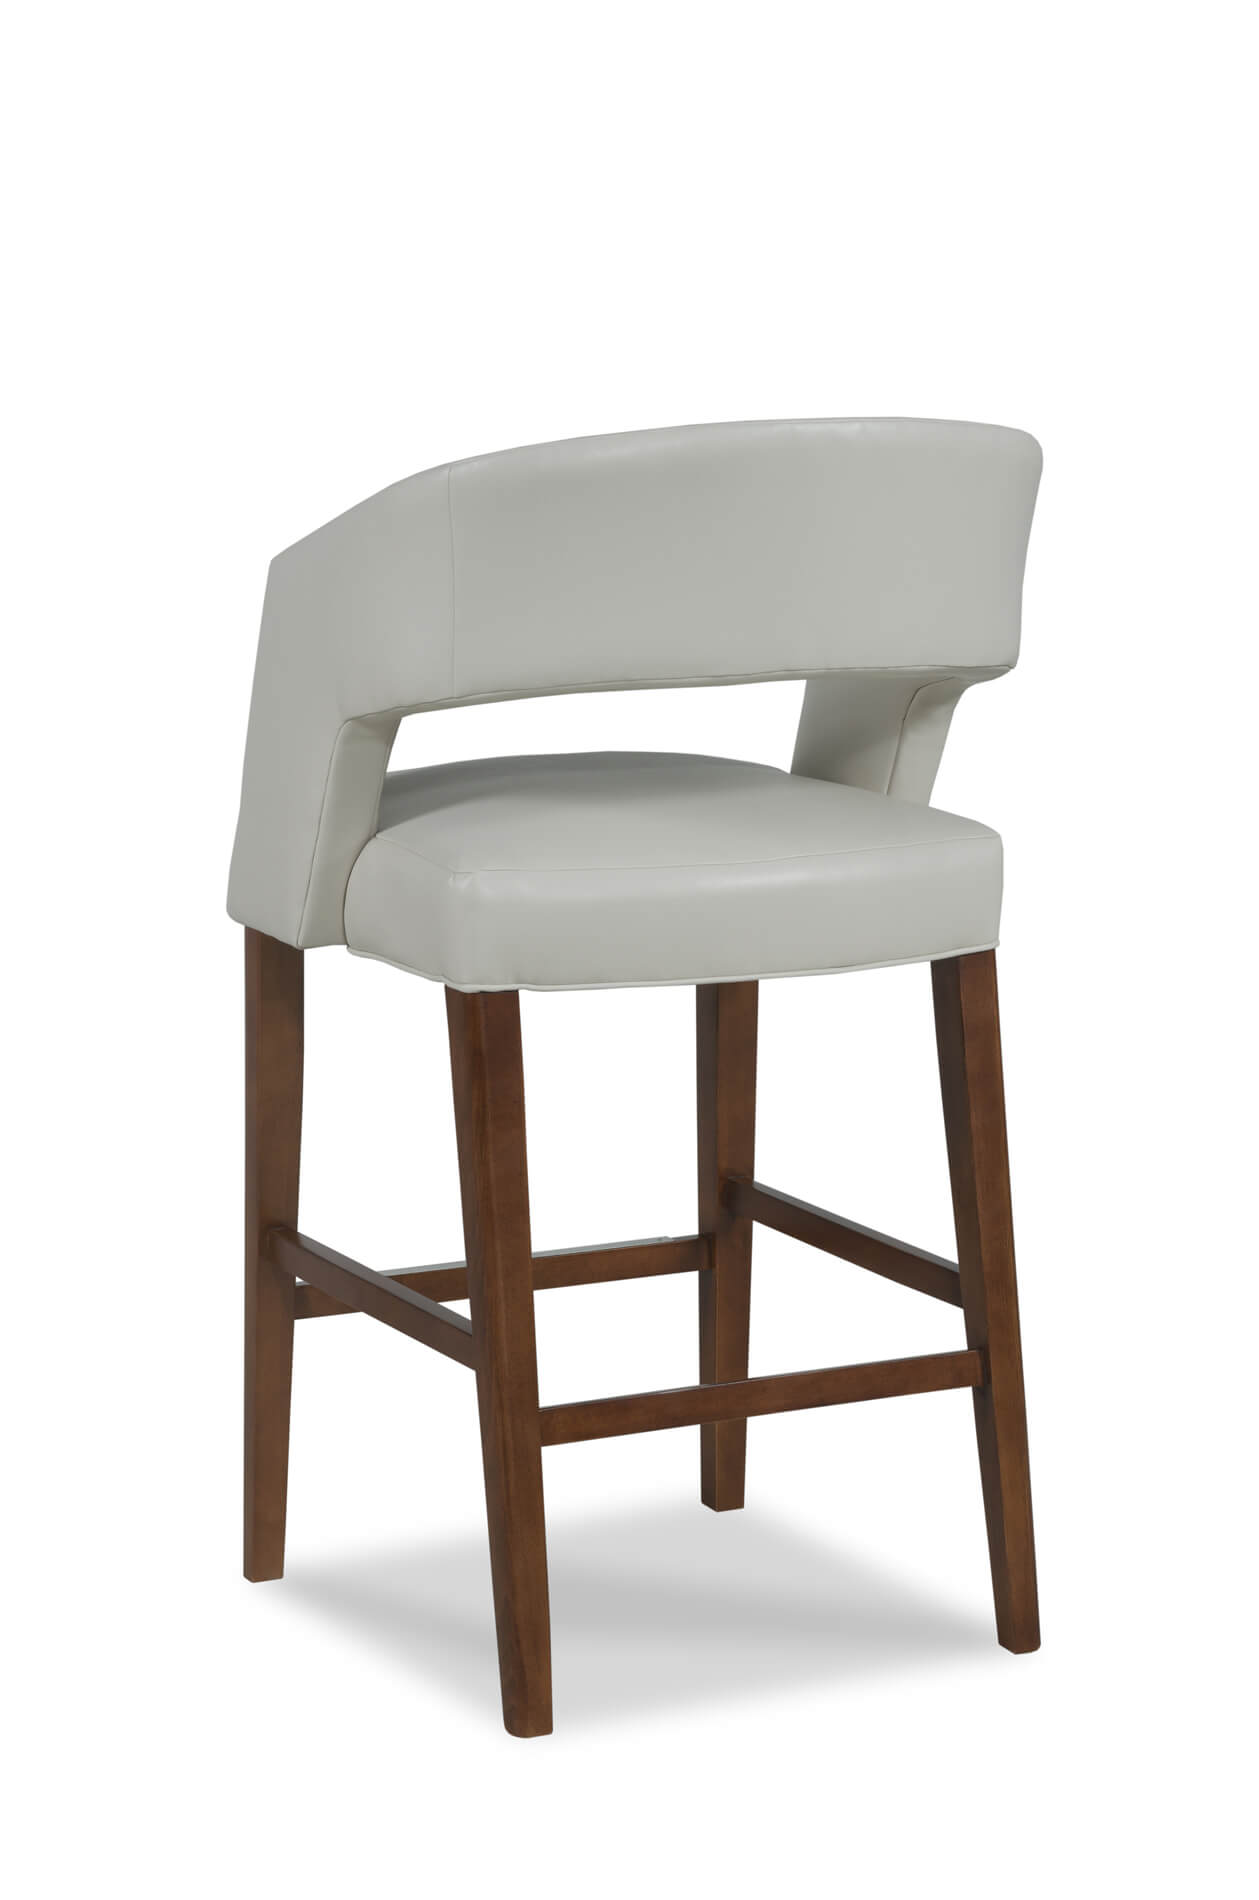 Buy Bryant Wooden Bar Counter Stool With Arms Free Shipping